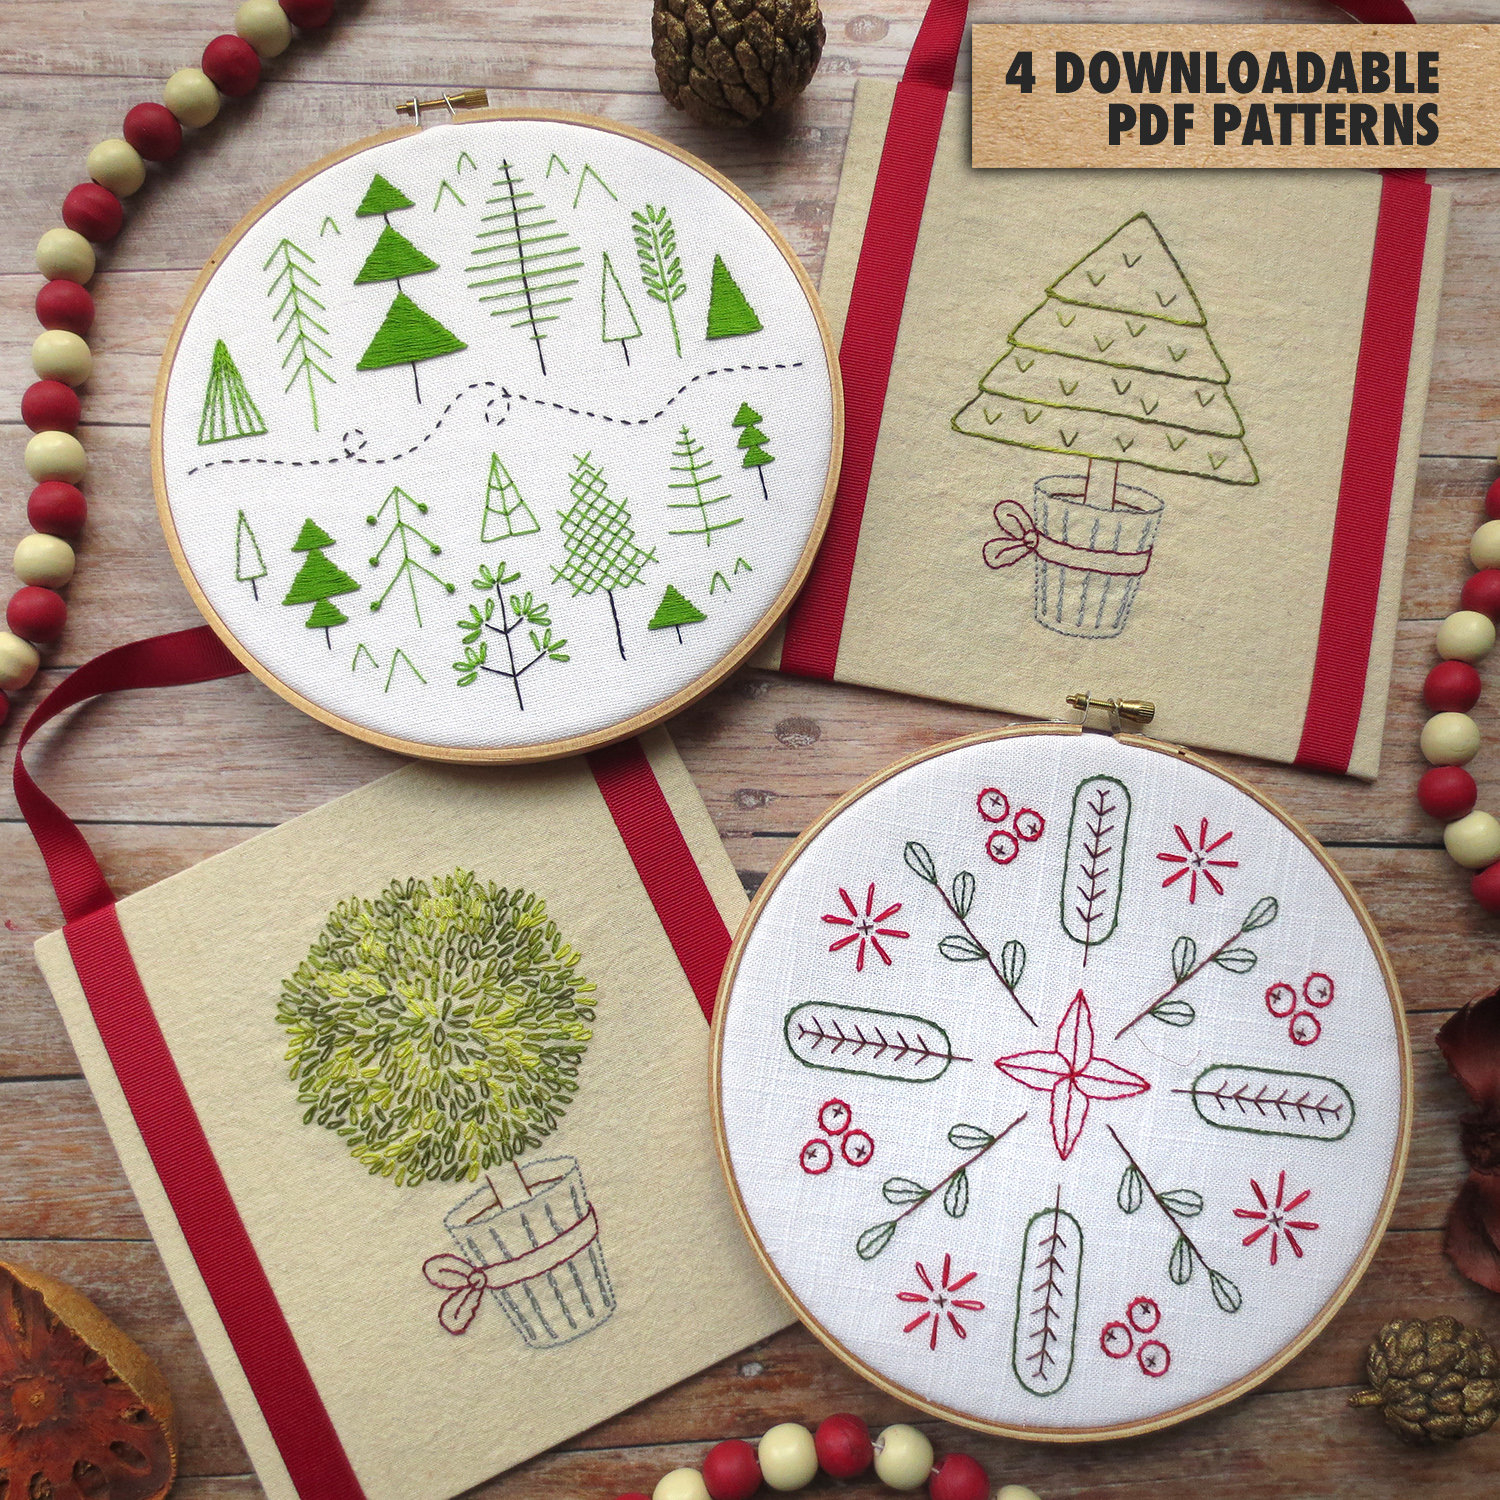 Embroidery Christmas Patterns 4 Hand Embroidery Patterns Christmas Holiday Embroidery Winter Decor Botanical Embroidery Pattern Beginner Embroidery Christmas Crafts